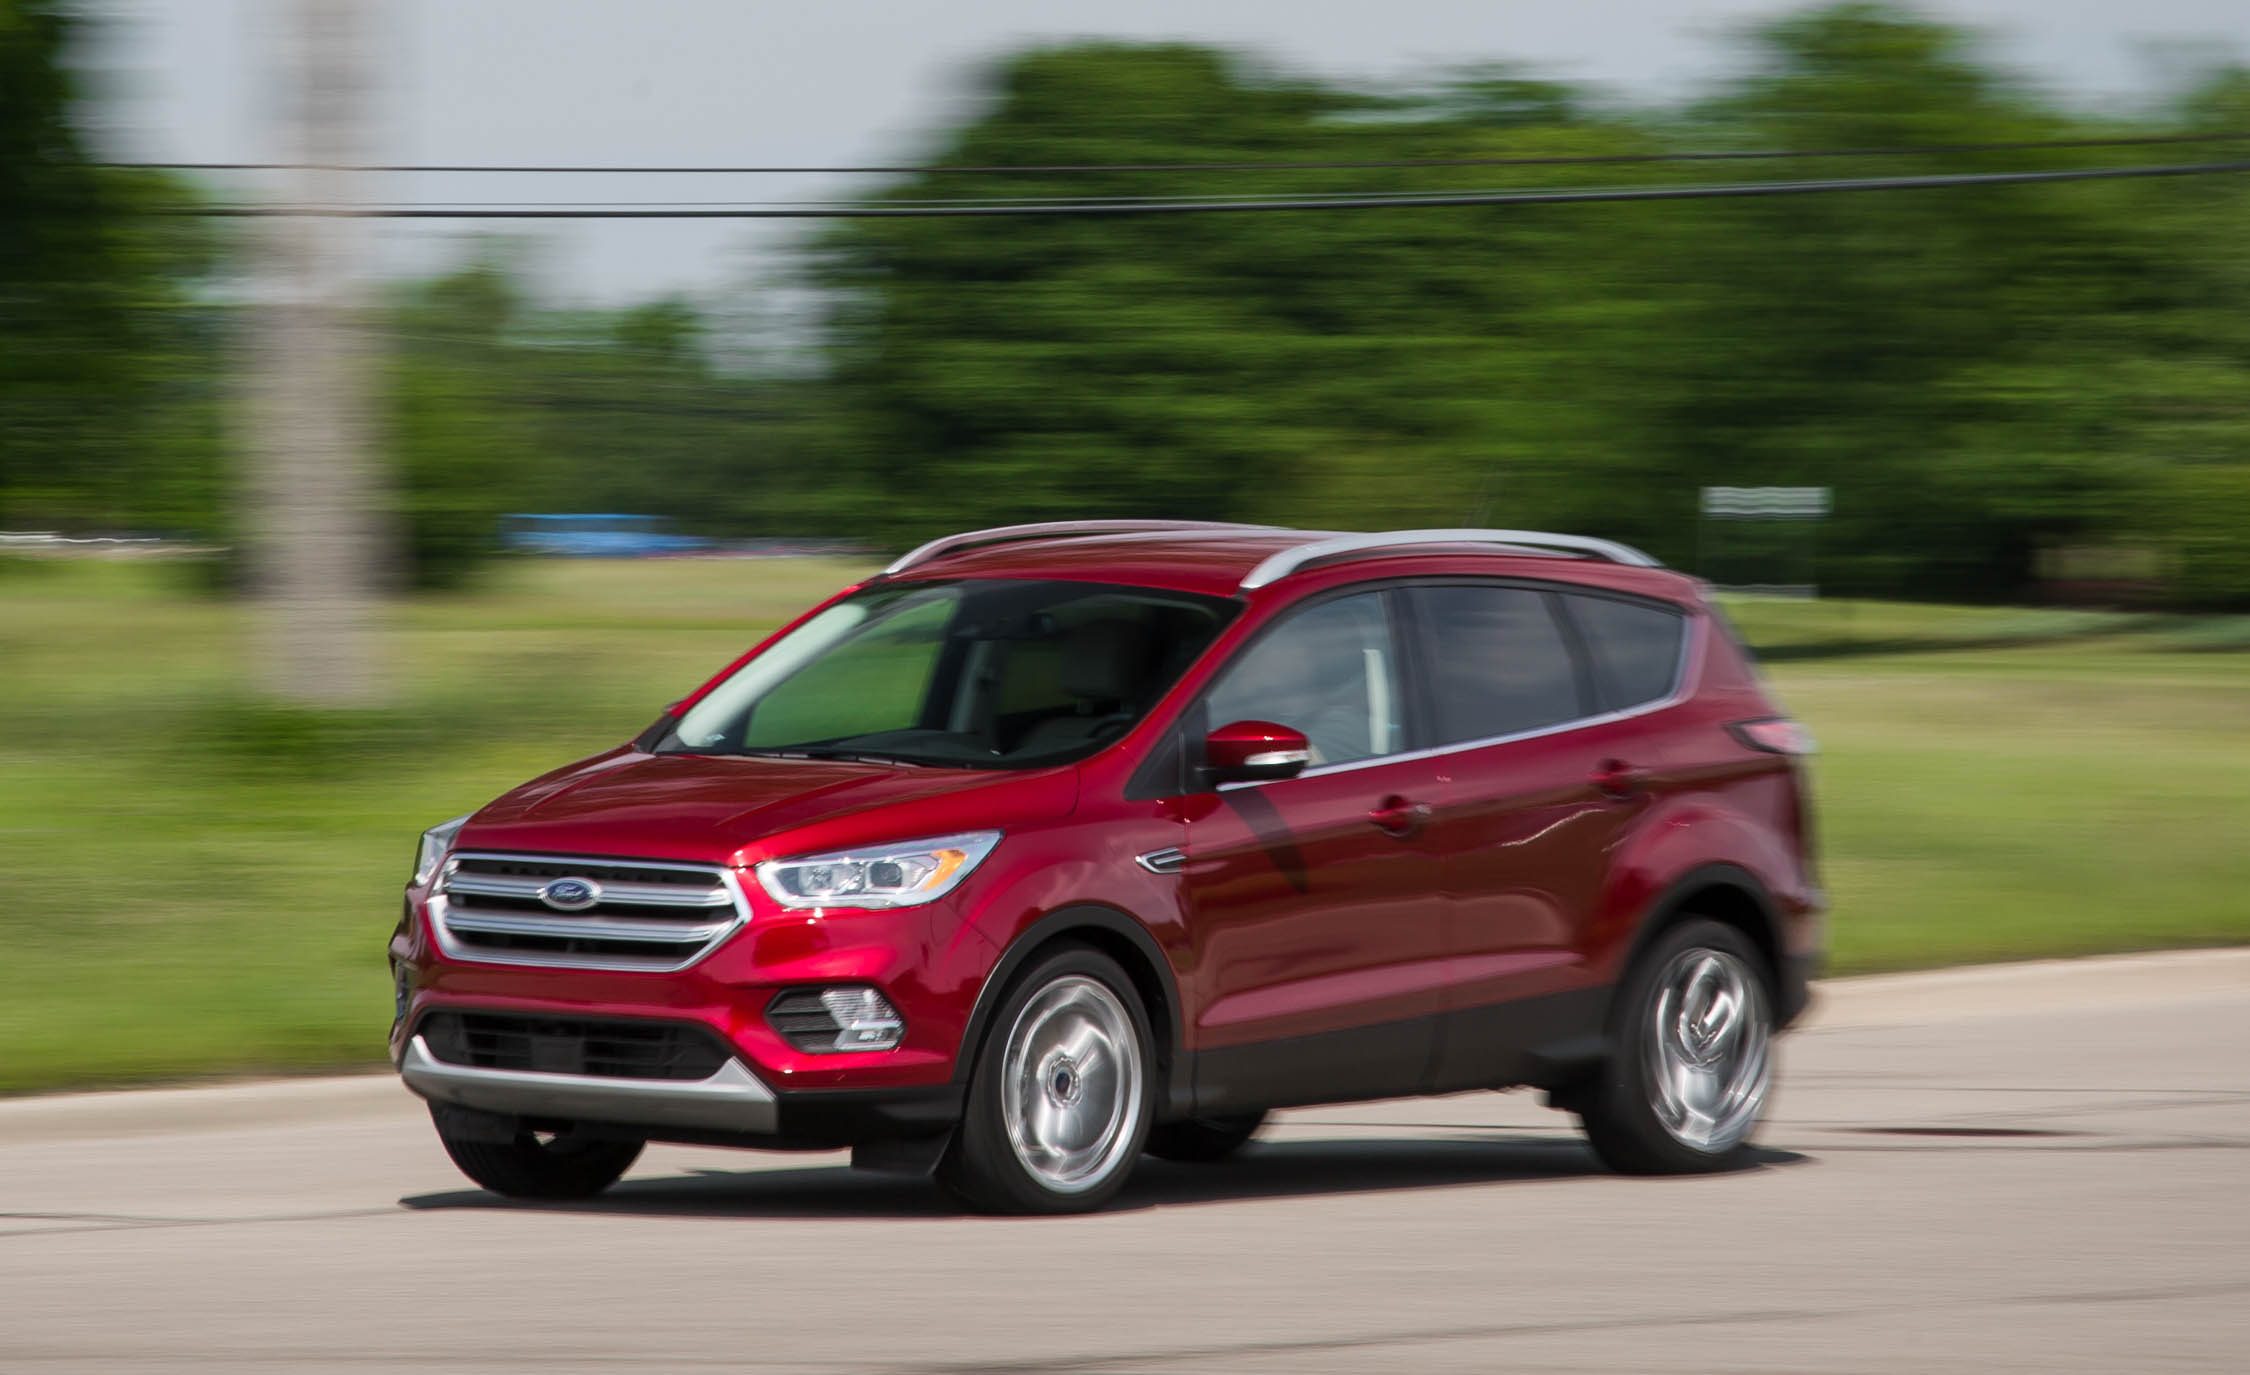 2017 Ford Escape Titanium (Photo 3 of 28)